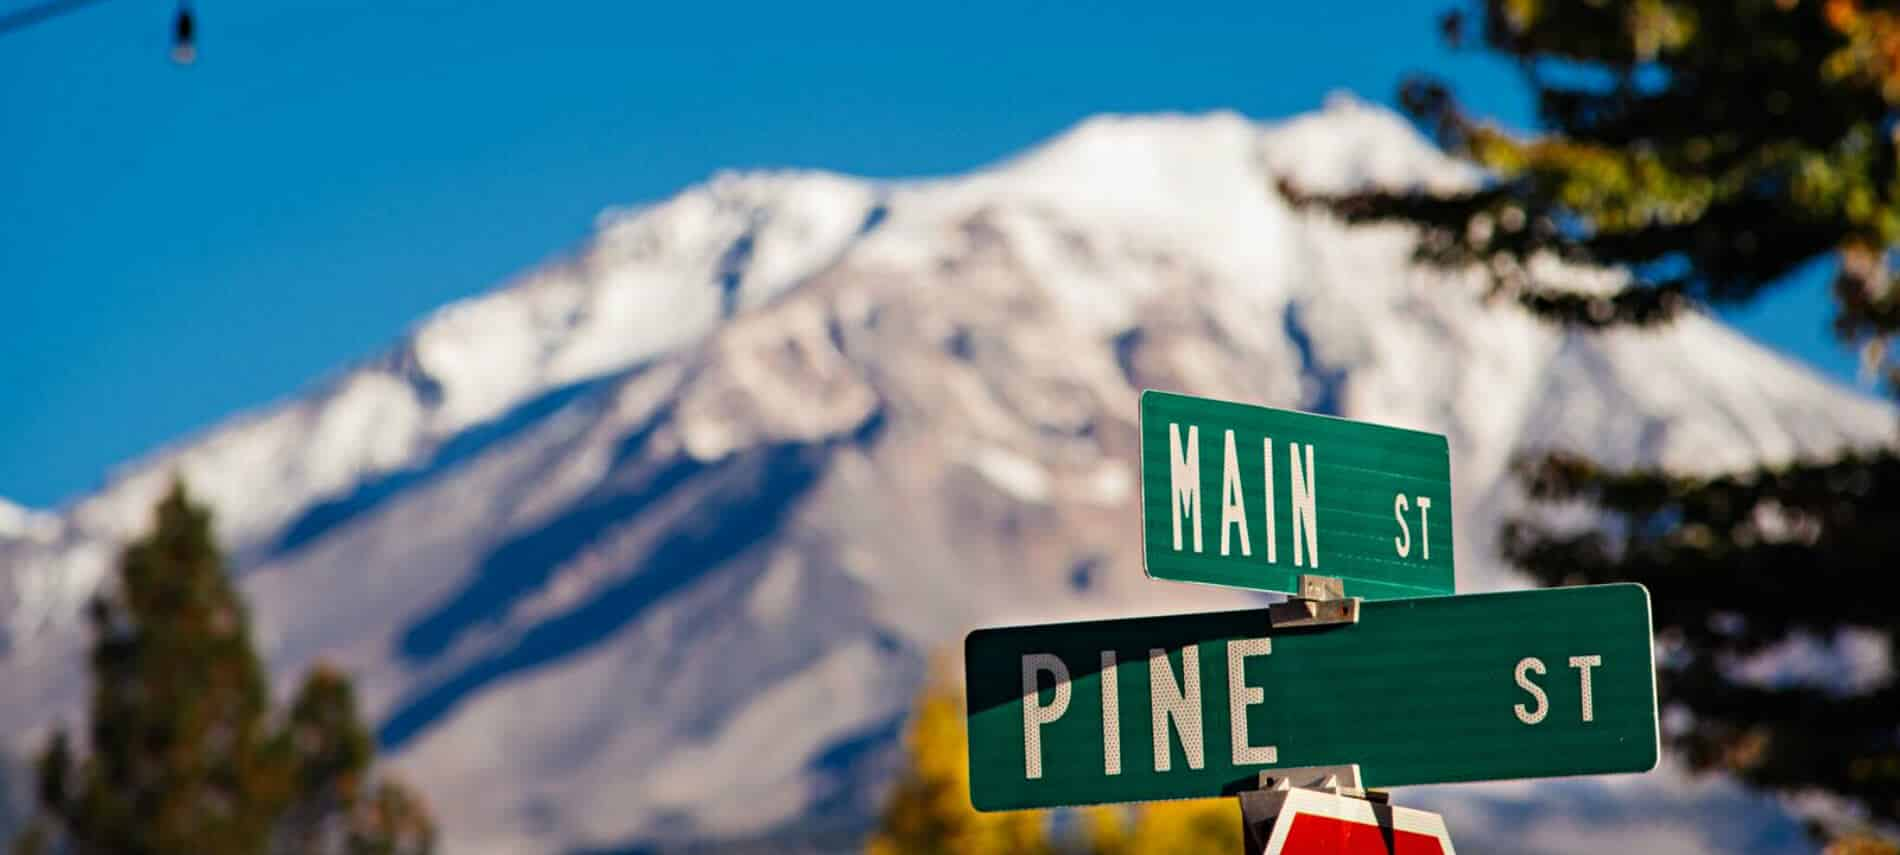 Street signs reading Main St and Pine St backed by snow-capped mountains.